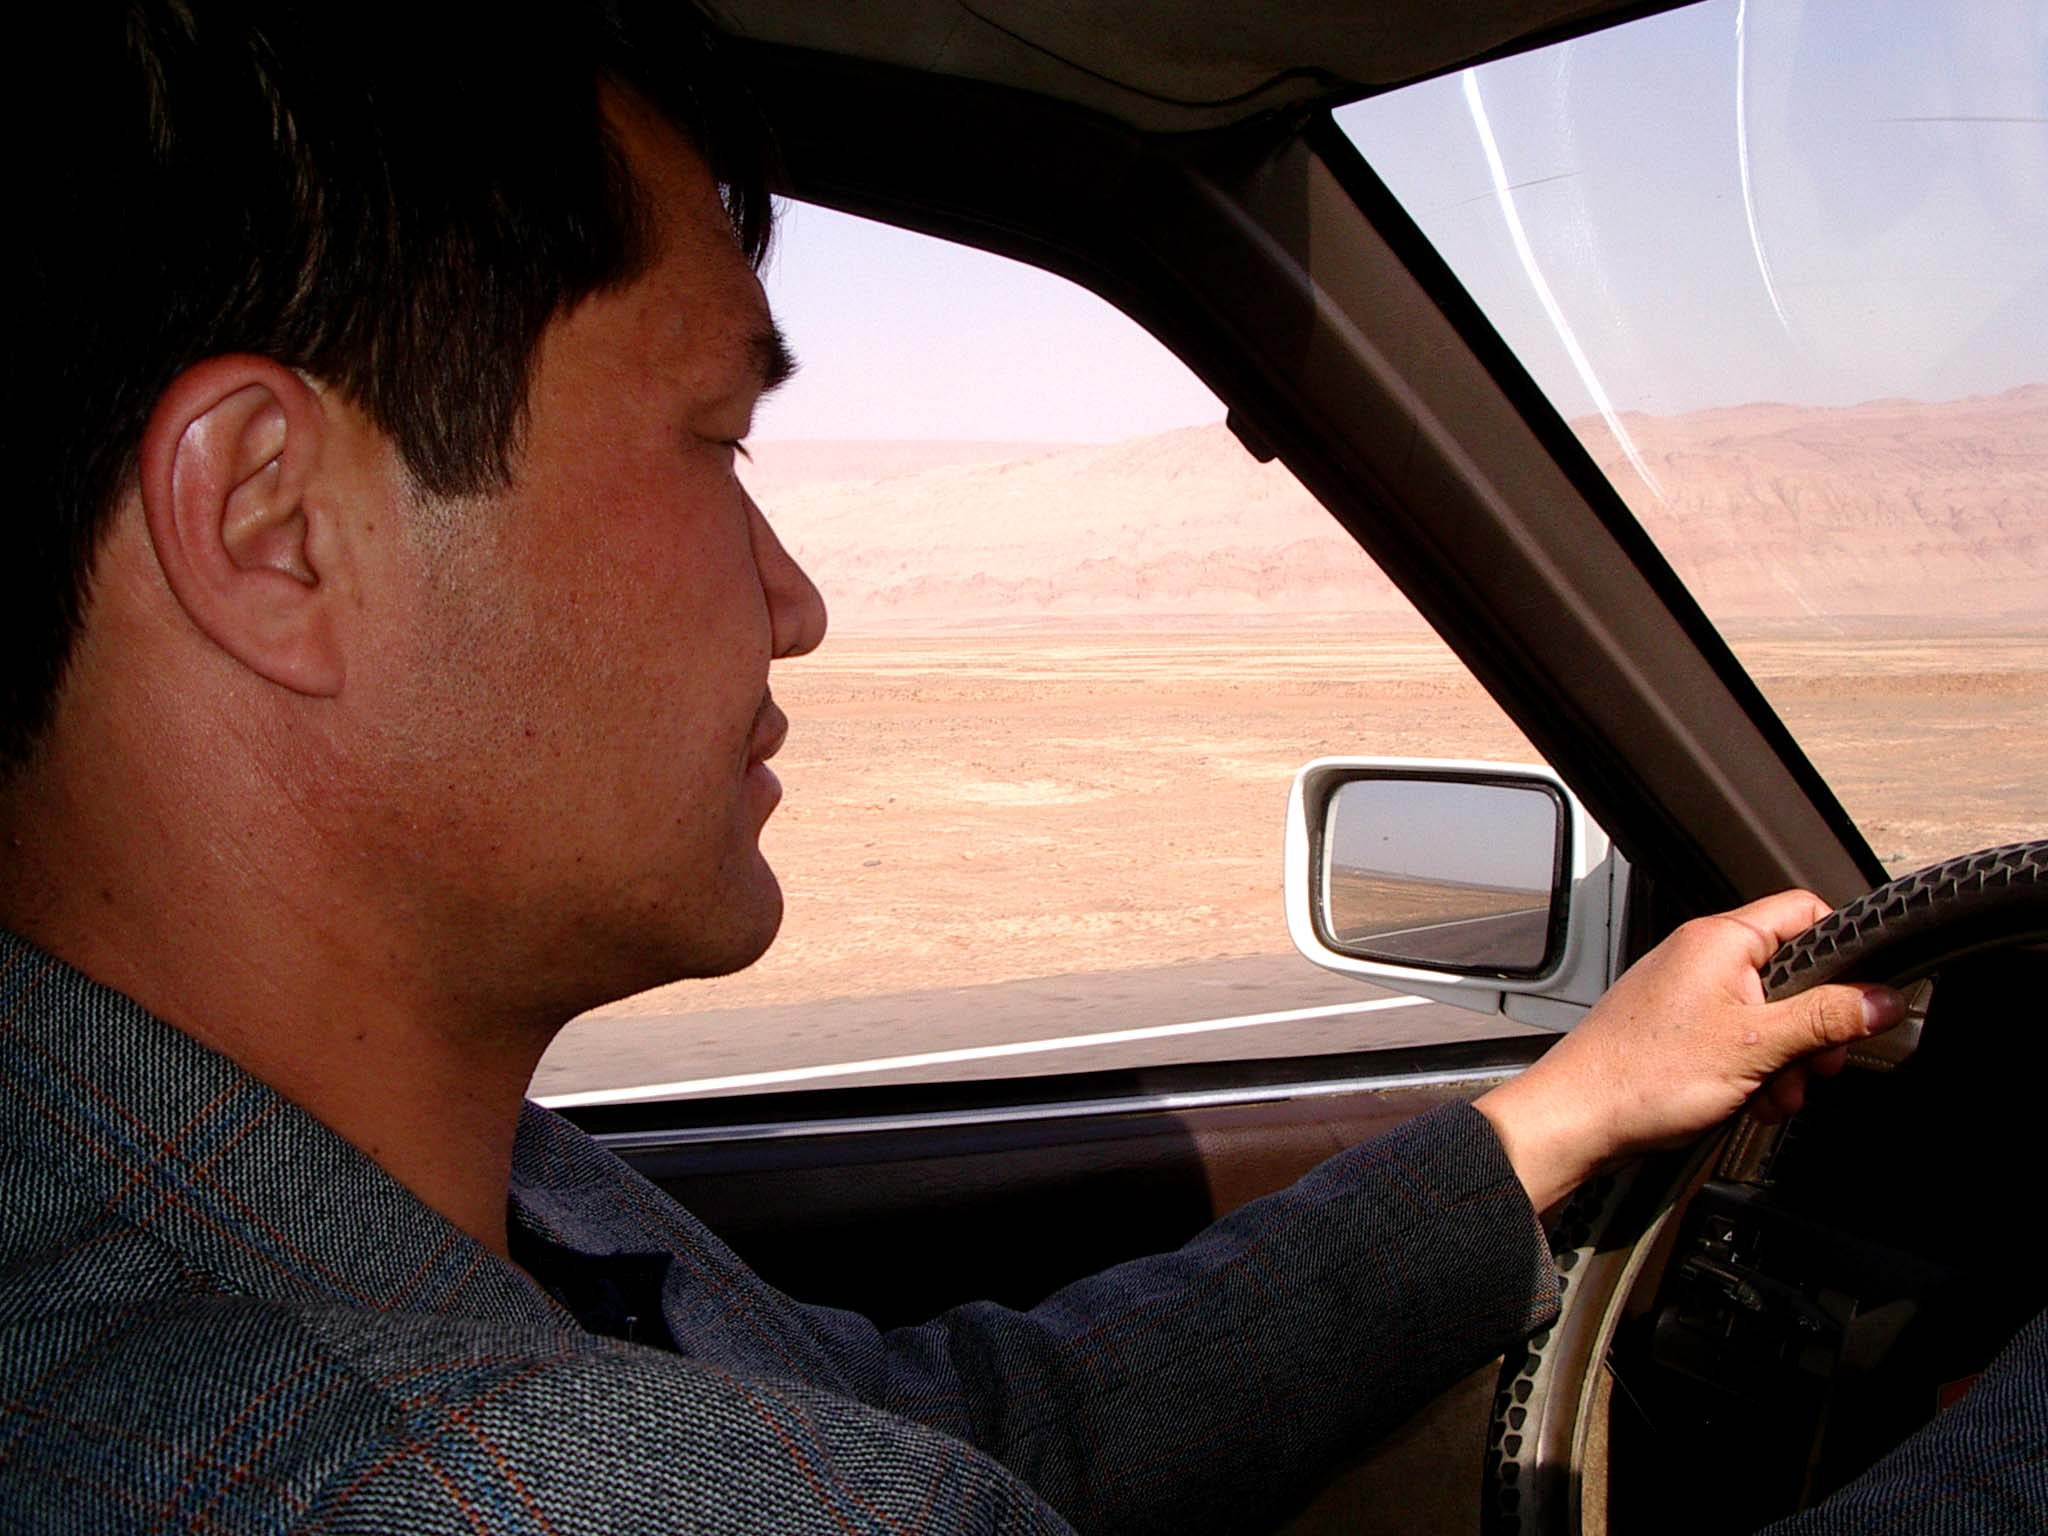 Our Uyghur guide and driver, Parhat, on the road to Gaochang.